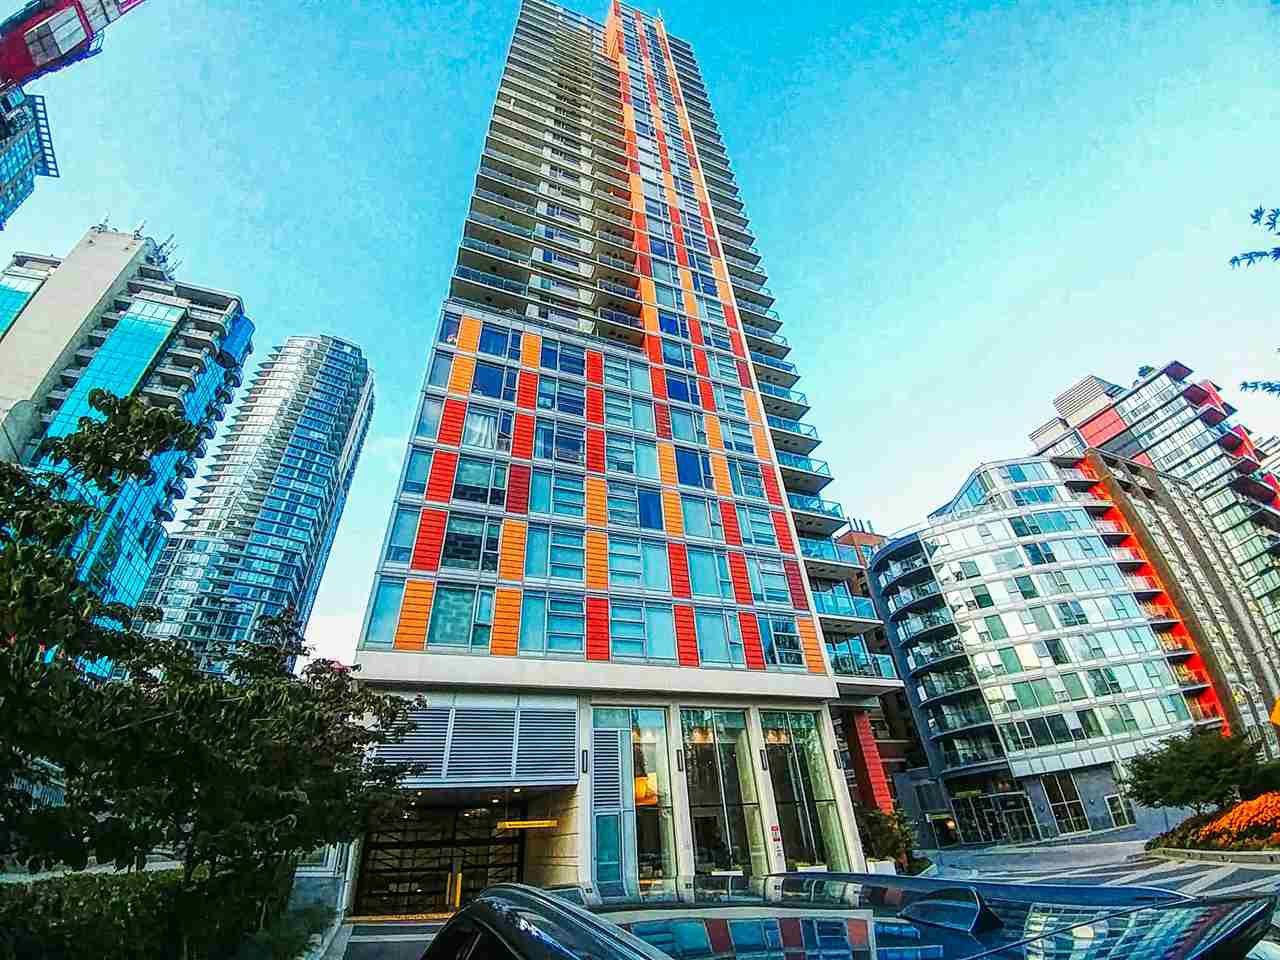 """Main Photo: 2703 1351 CONTINENTAL Street in Vancouver: Downtown VW Condo for sale in """"MADDOX"""" (Vancouver West)  : MLS®# R2393413"""